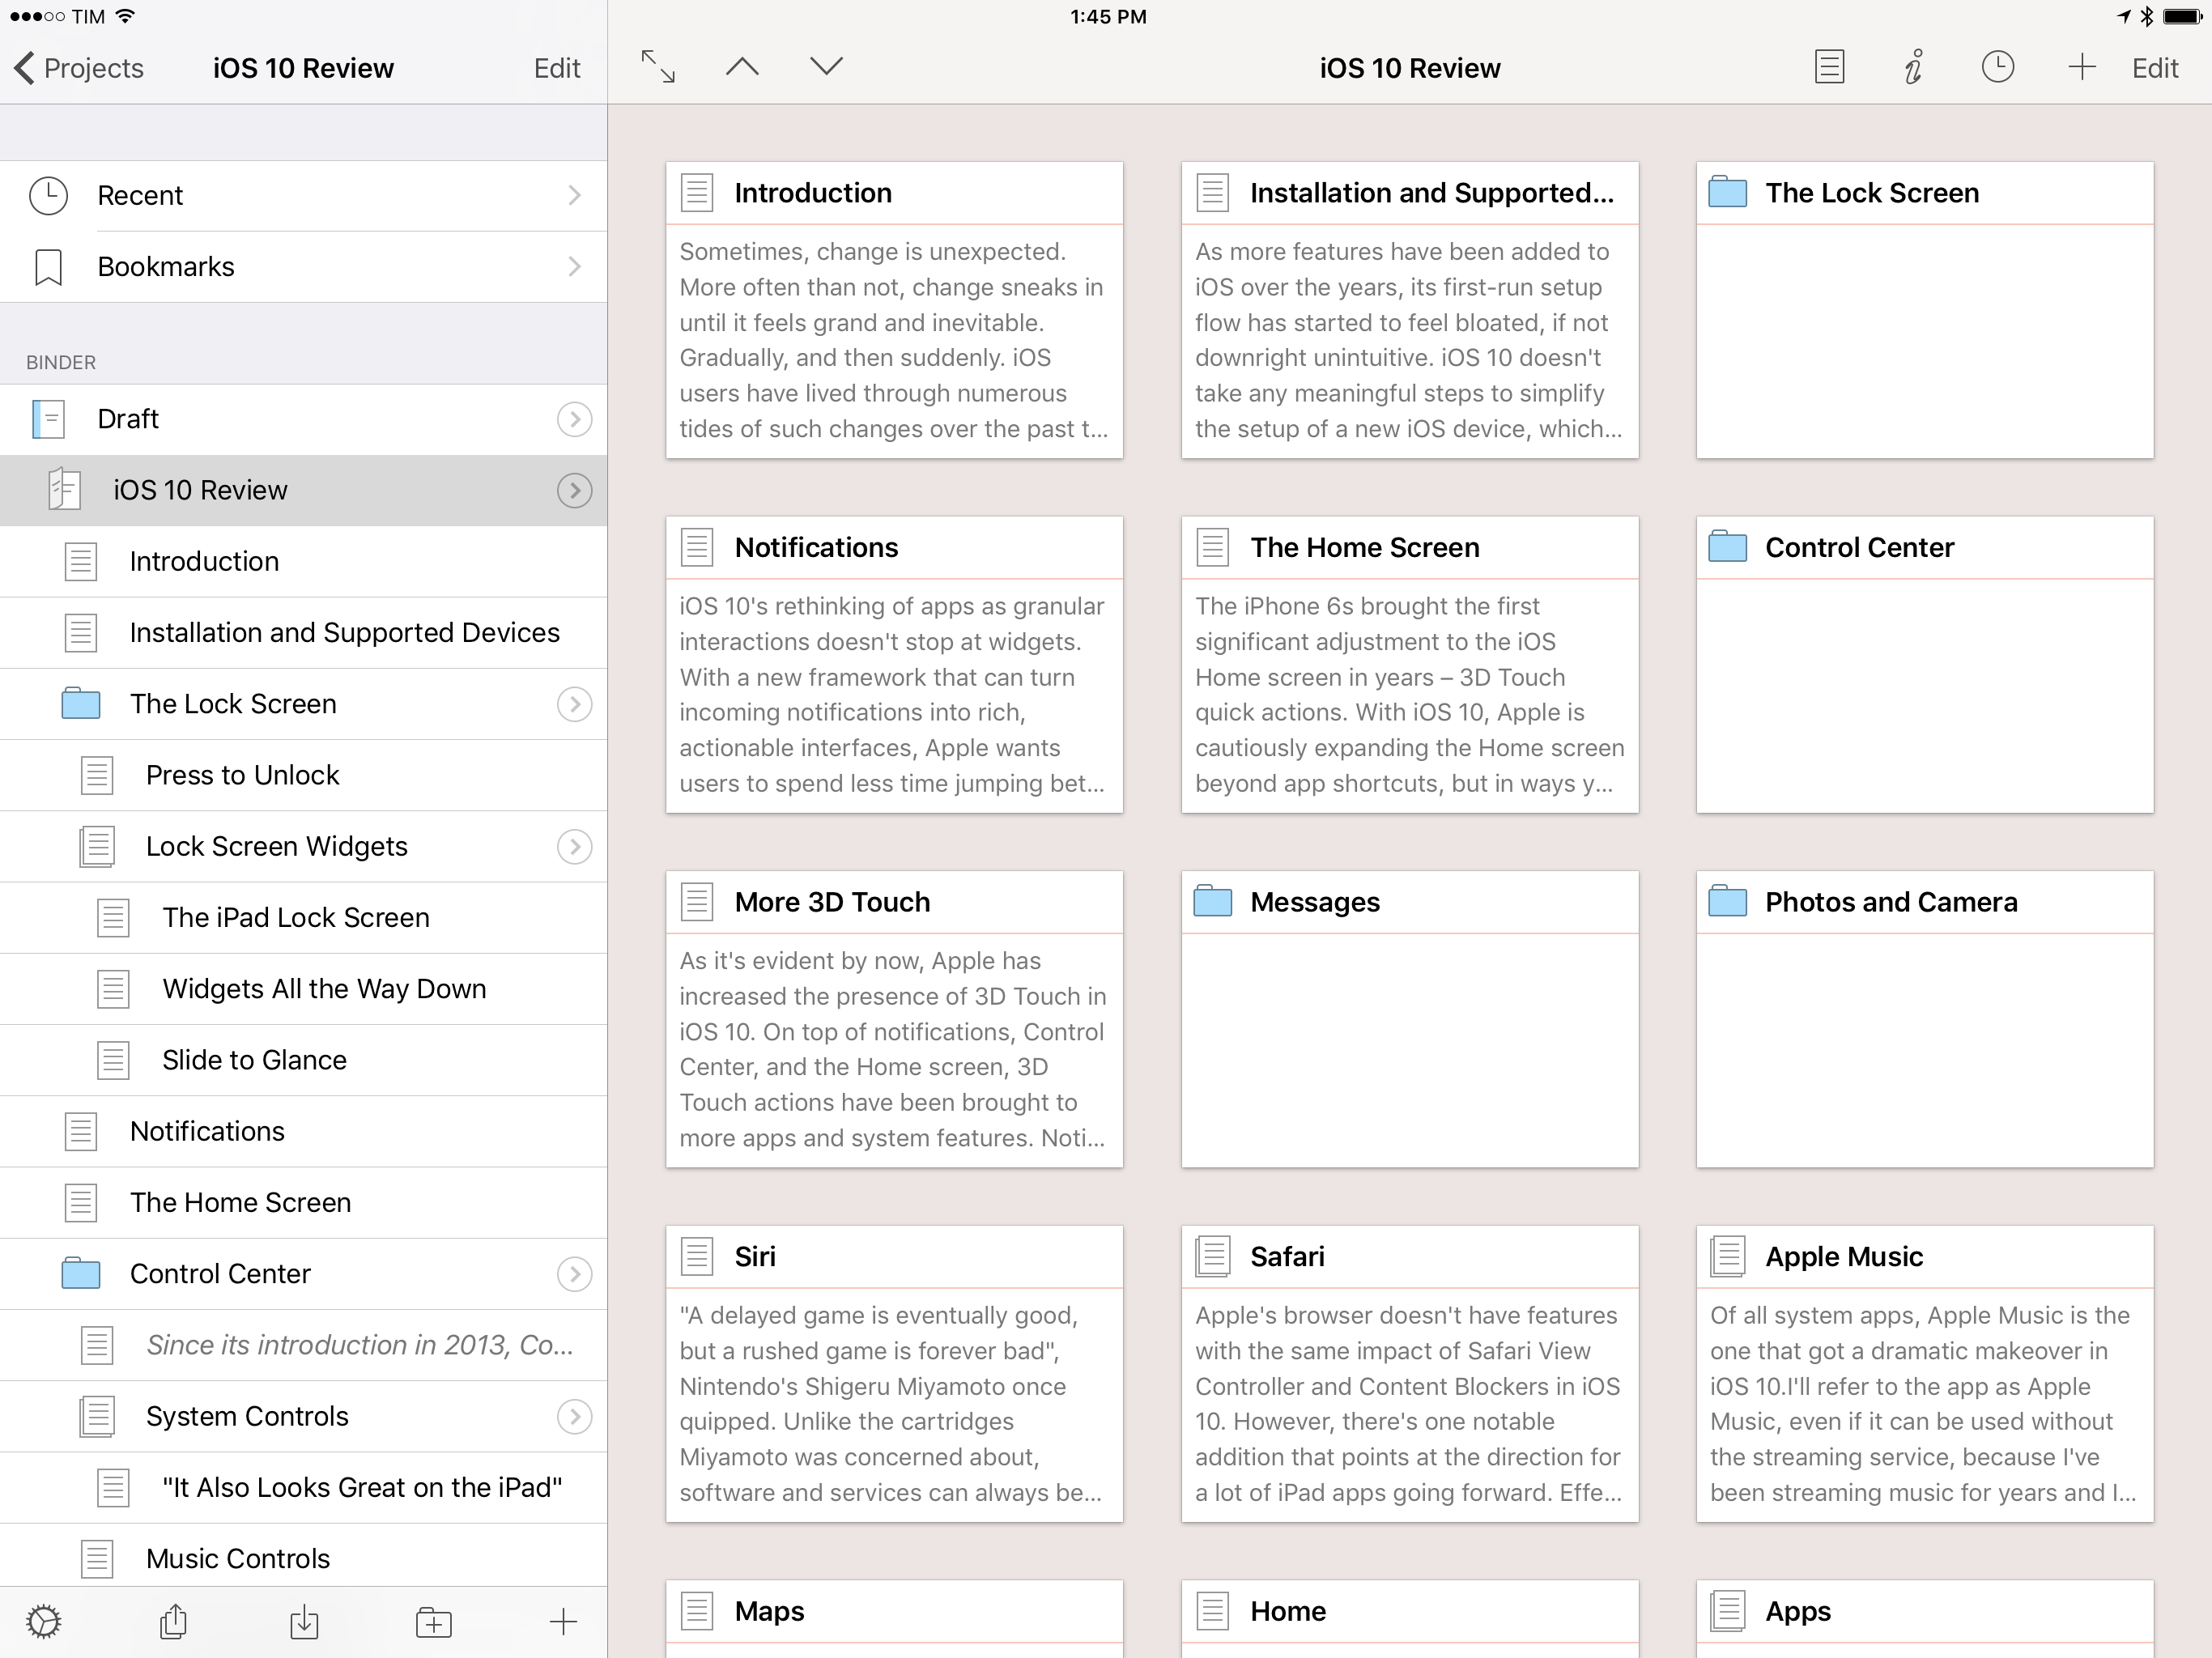 MY iOS 10 review project in Scrivener.